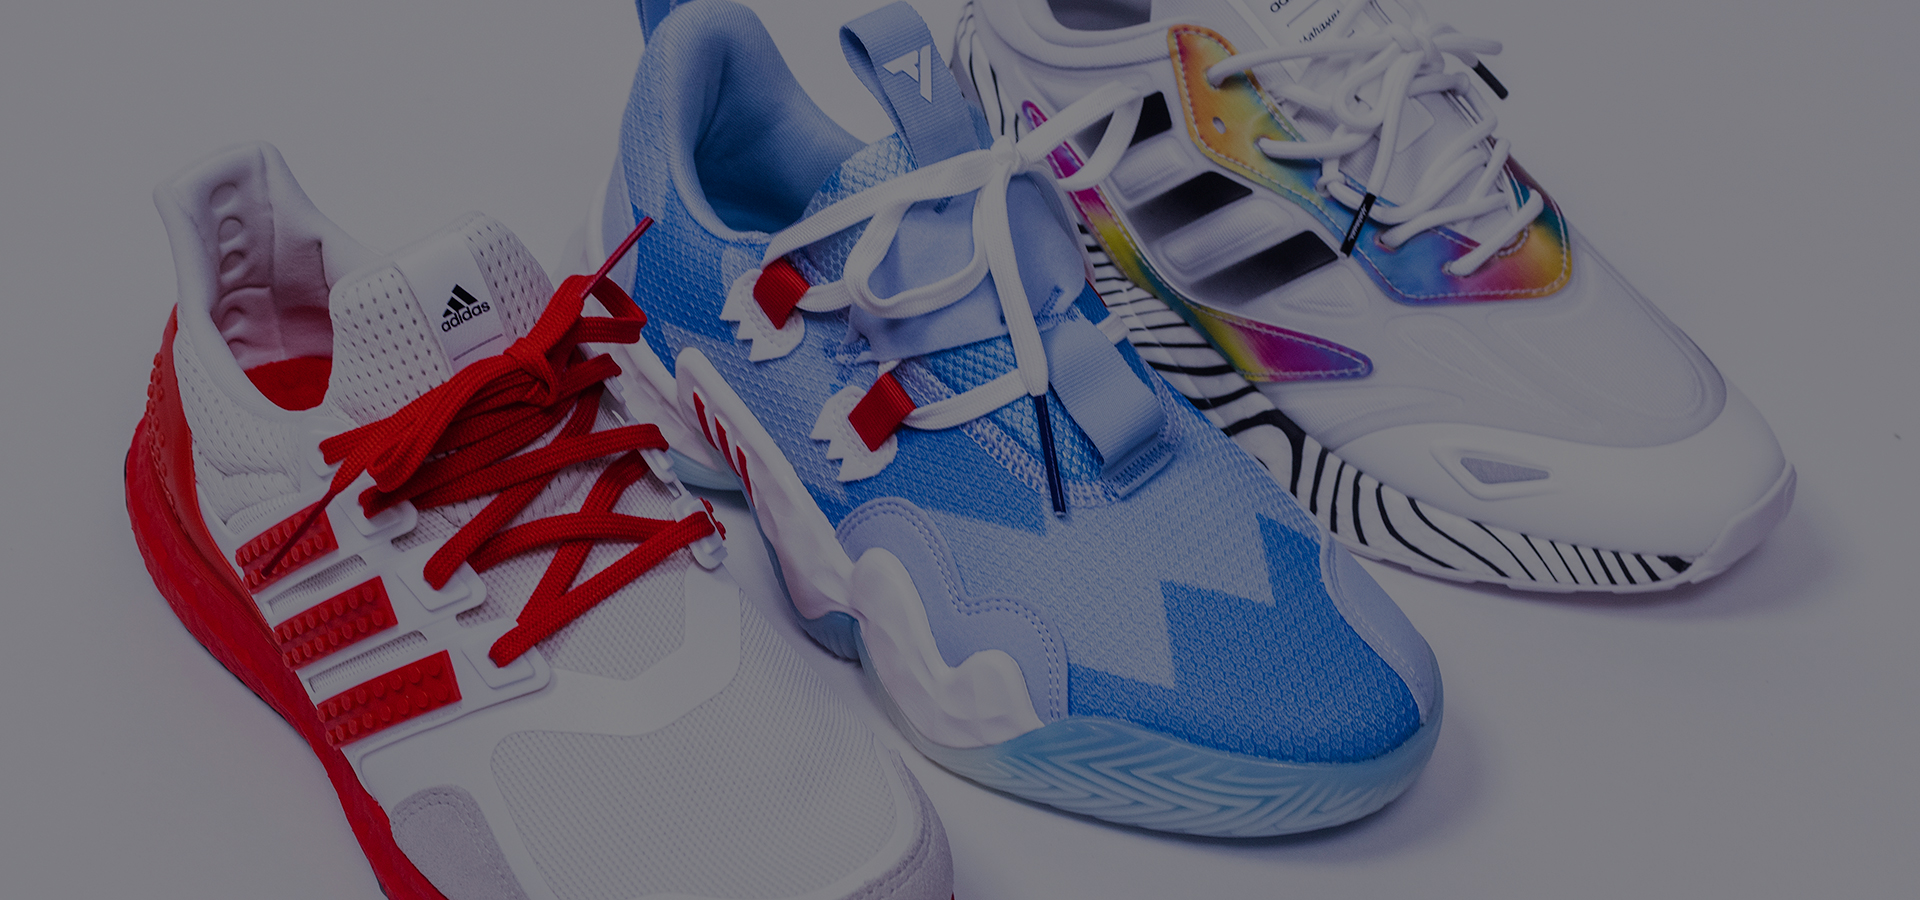 Immerse Yourself In BOOST DAY With The Latest Hot Drops